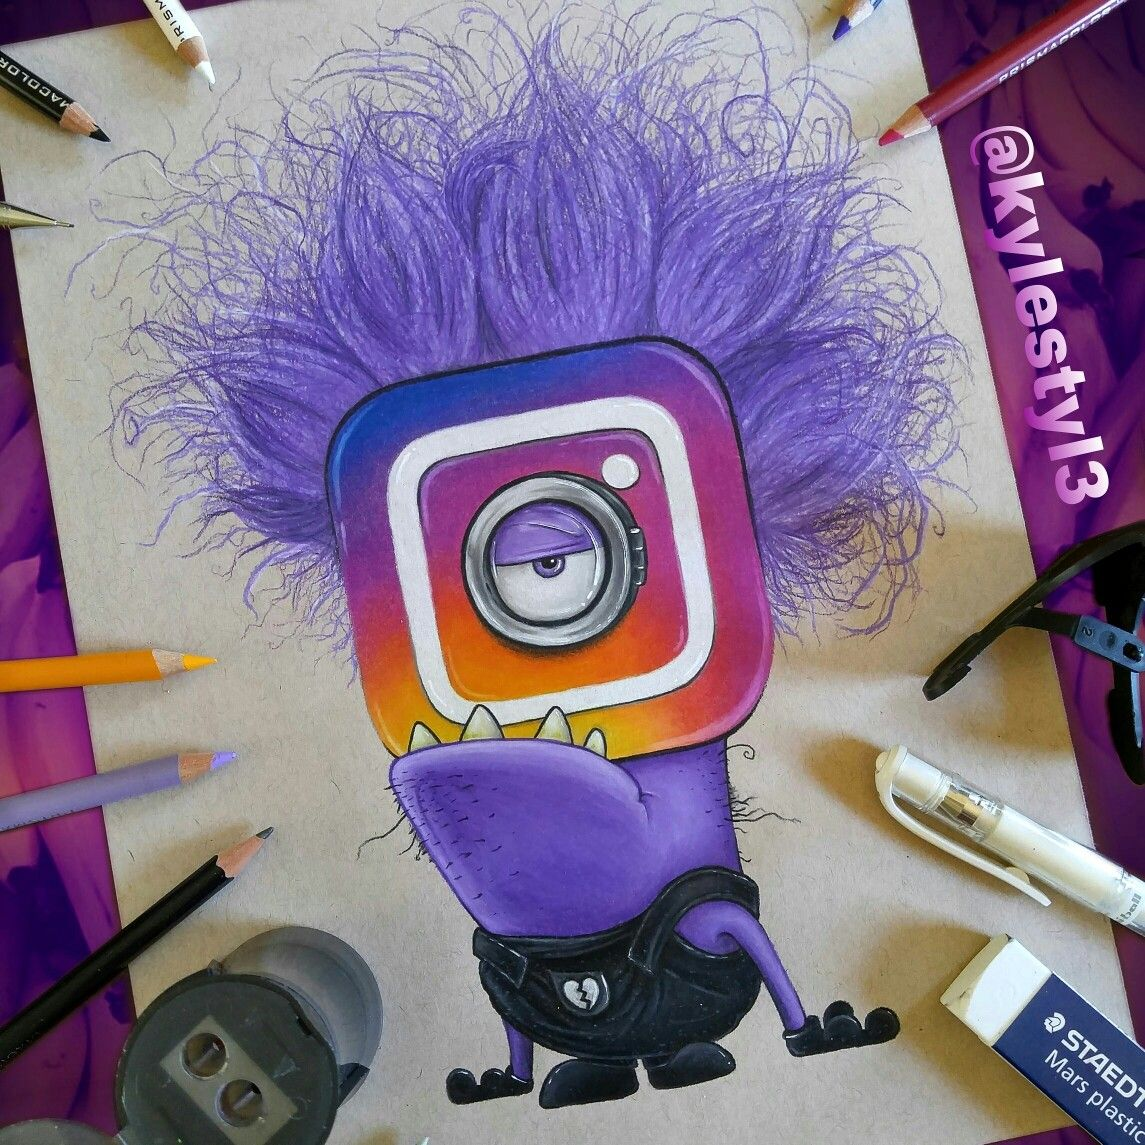 New Instagram Logo and Evil Minion Social Media Mash Up